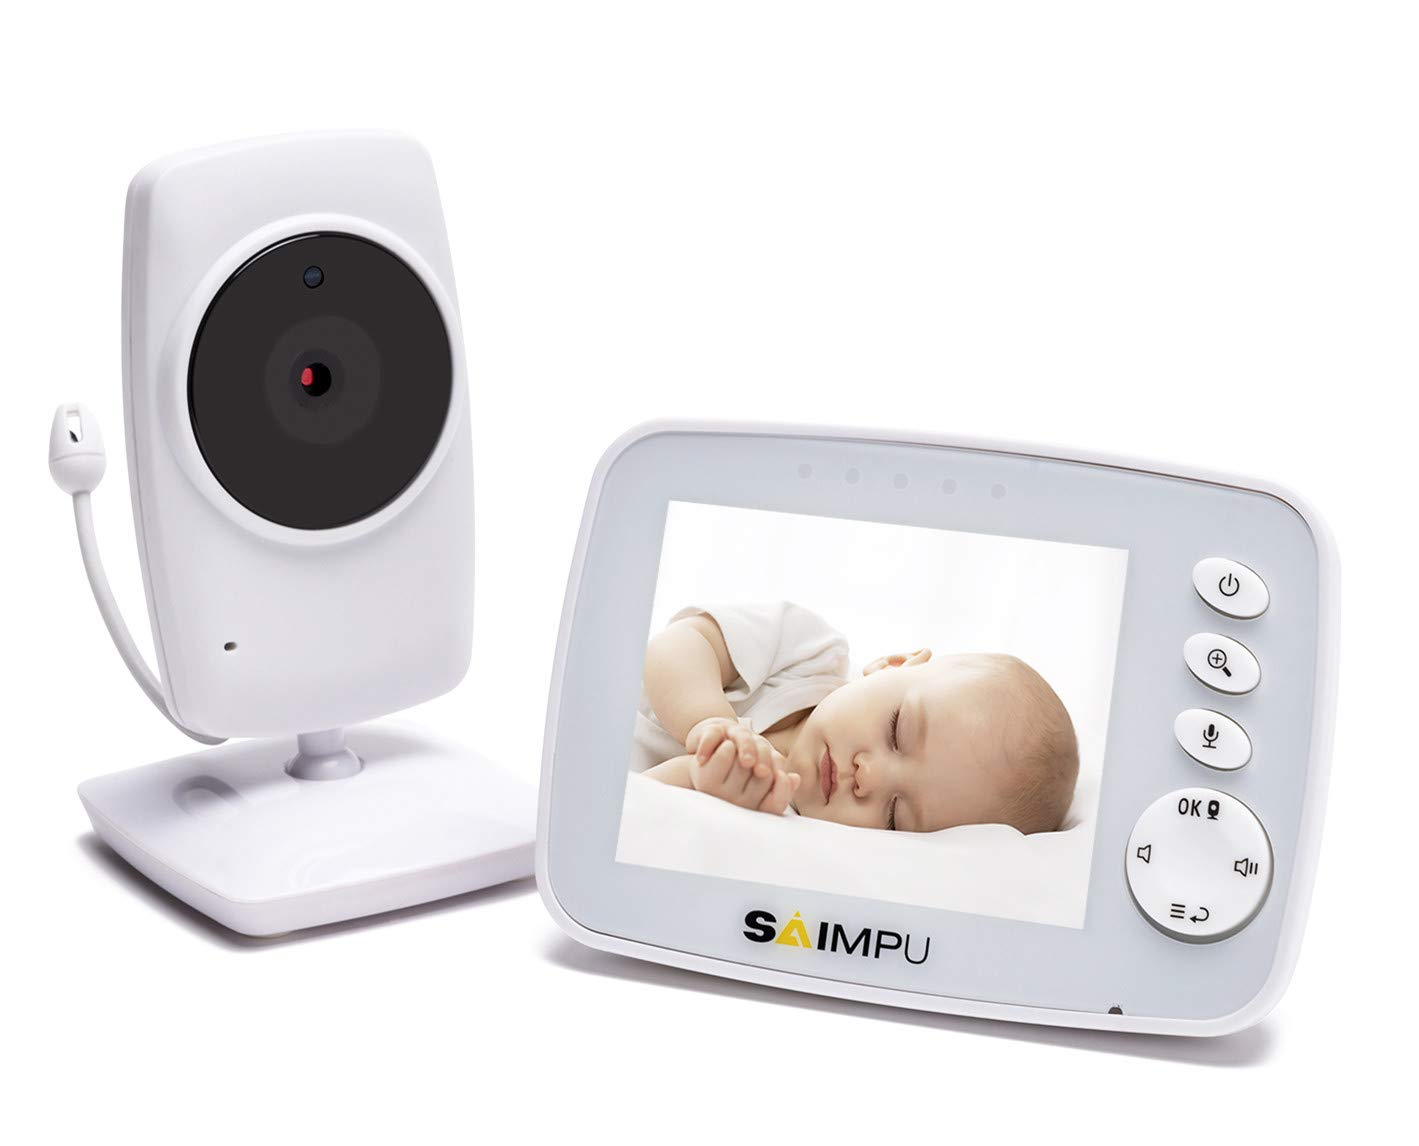 Baby Monitor-3.2 Inch Video Baby Monitor with Camera and Audio for Baby Nursery,Support Multi Camera,Two Way Talk,Temperature Sensor,Built-in Lullabies by SAIMPU (Image #1)